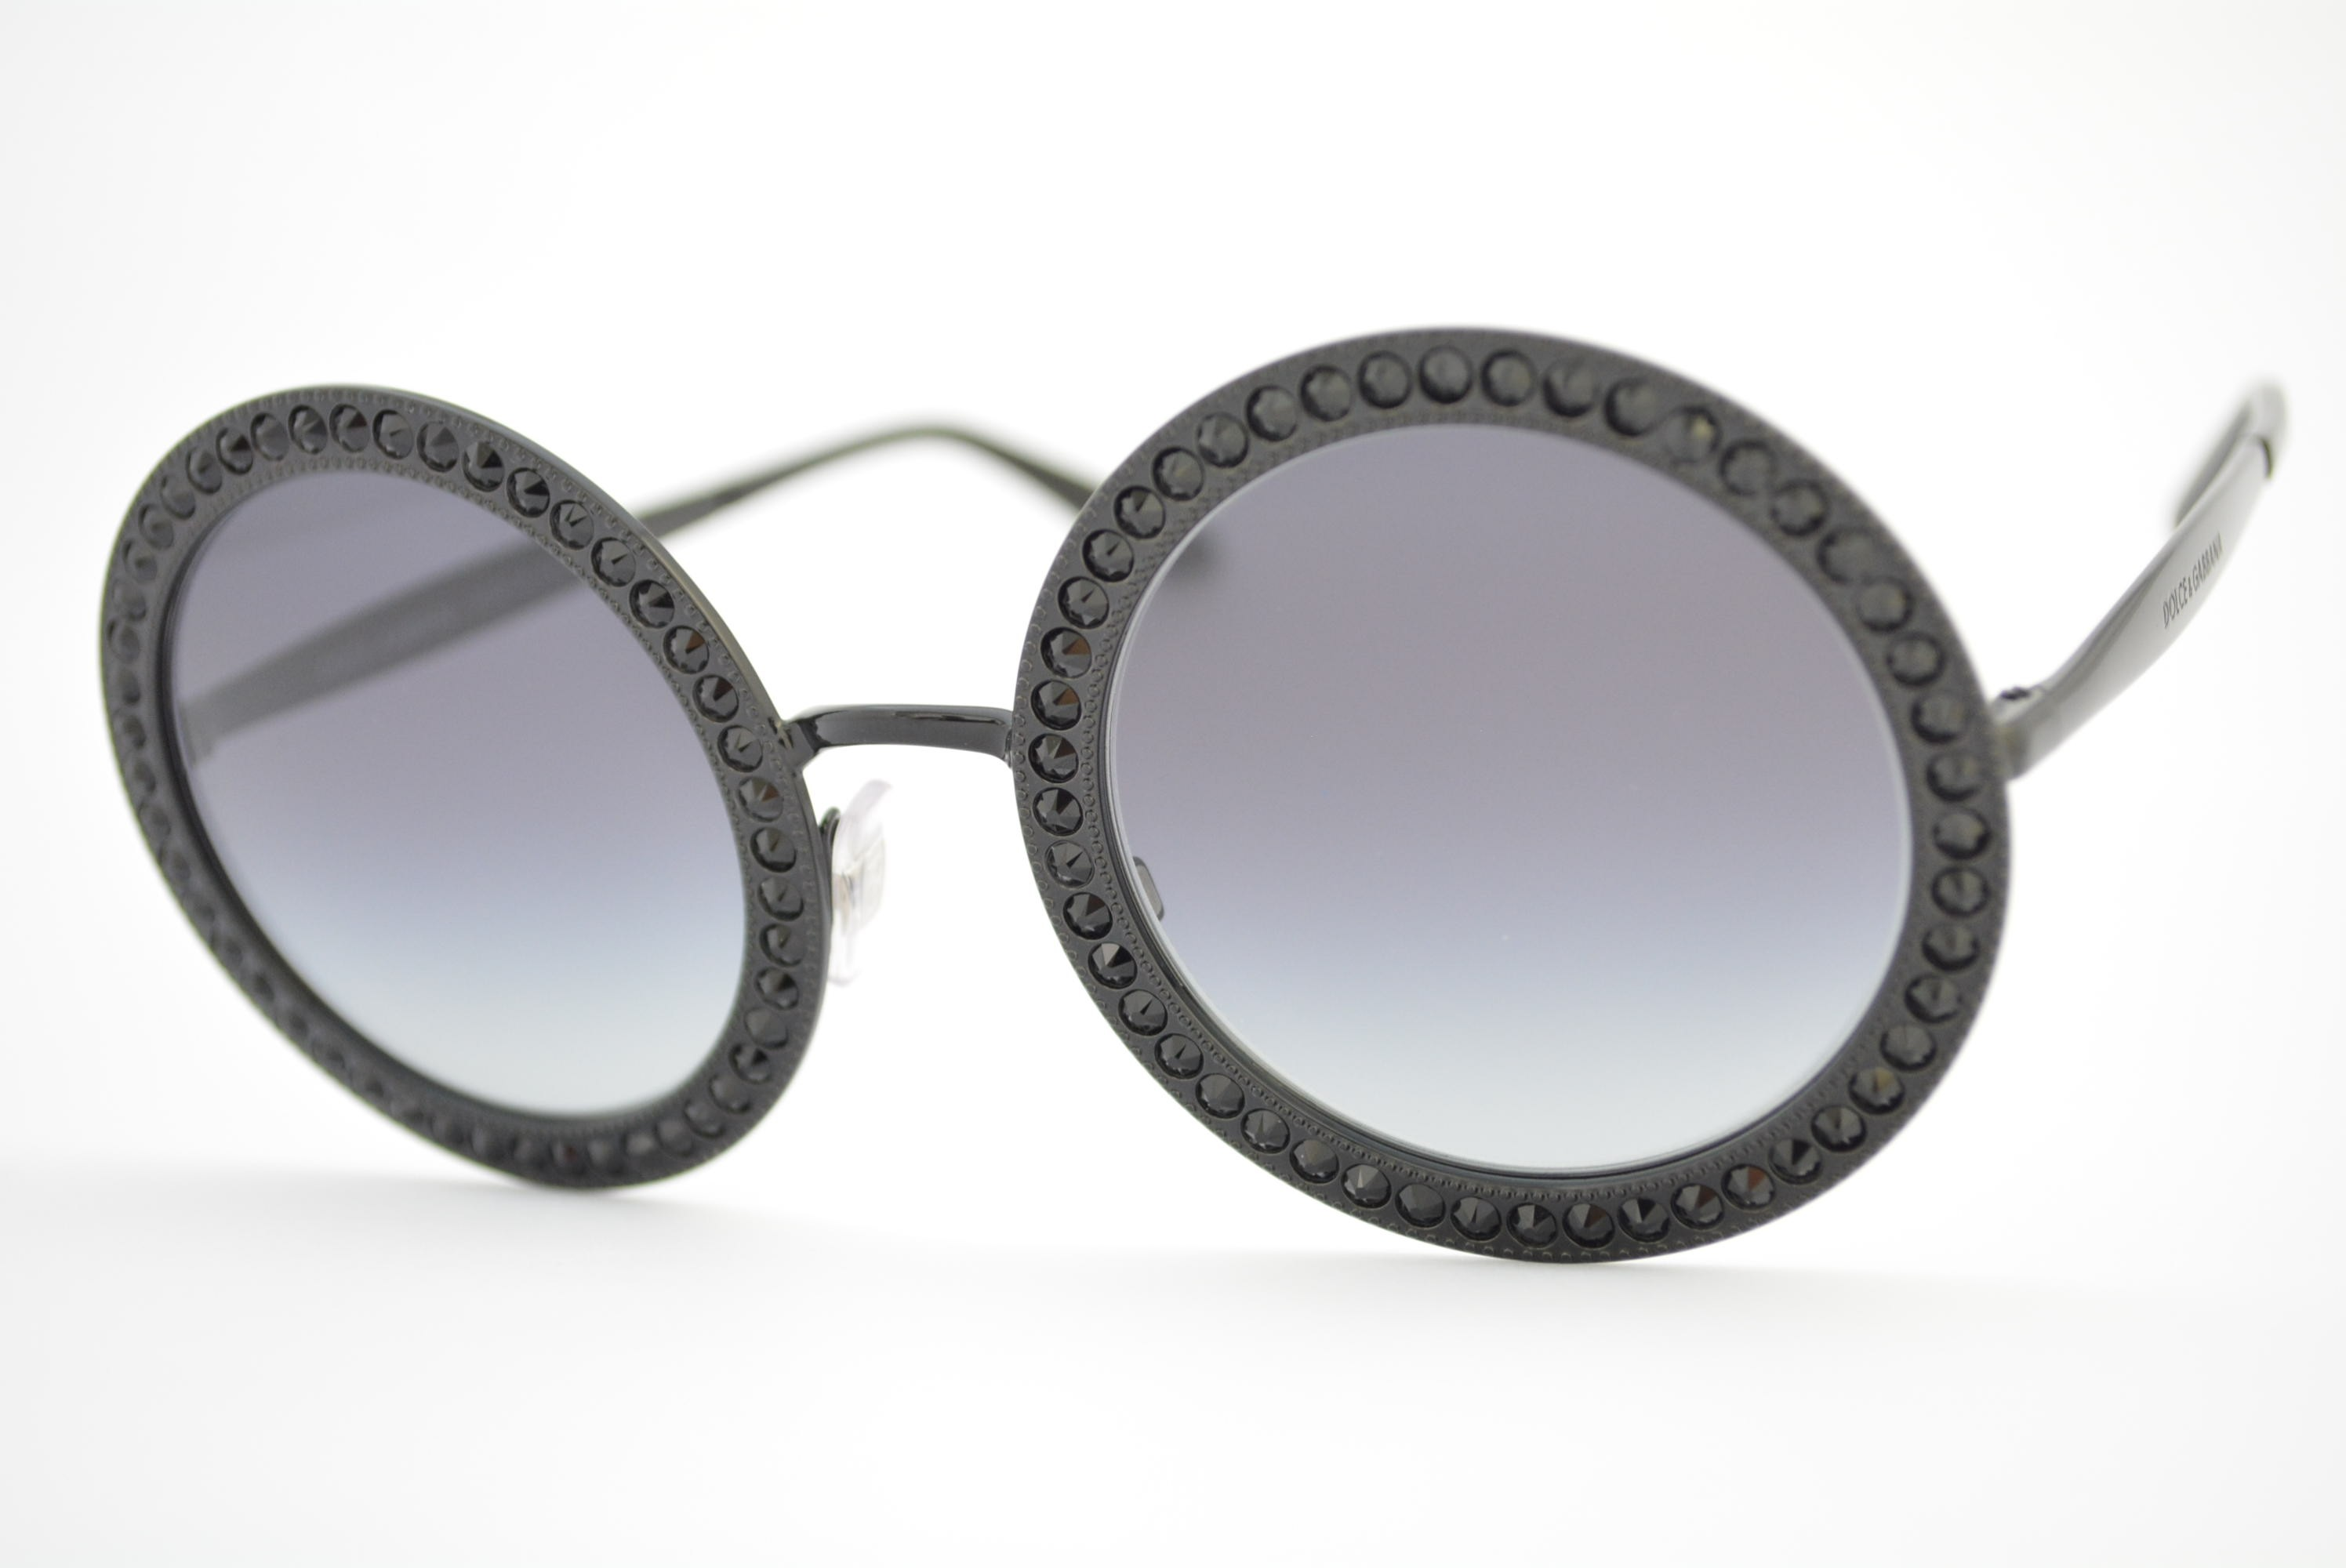 óculos de sol Dolce   Gabbana mod DG2170-B 01 8g Mambo Collection ... f913be52b4